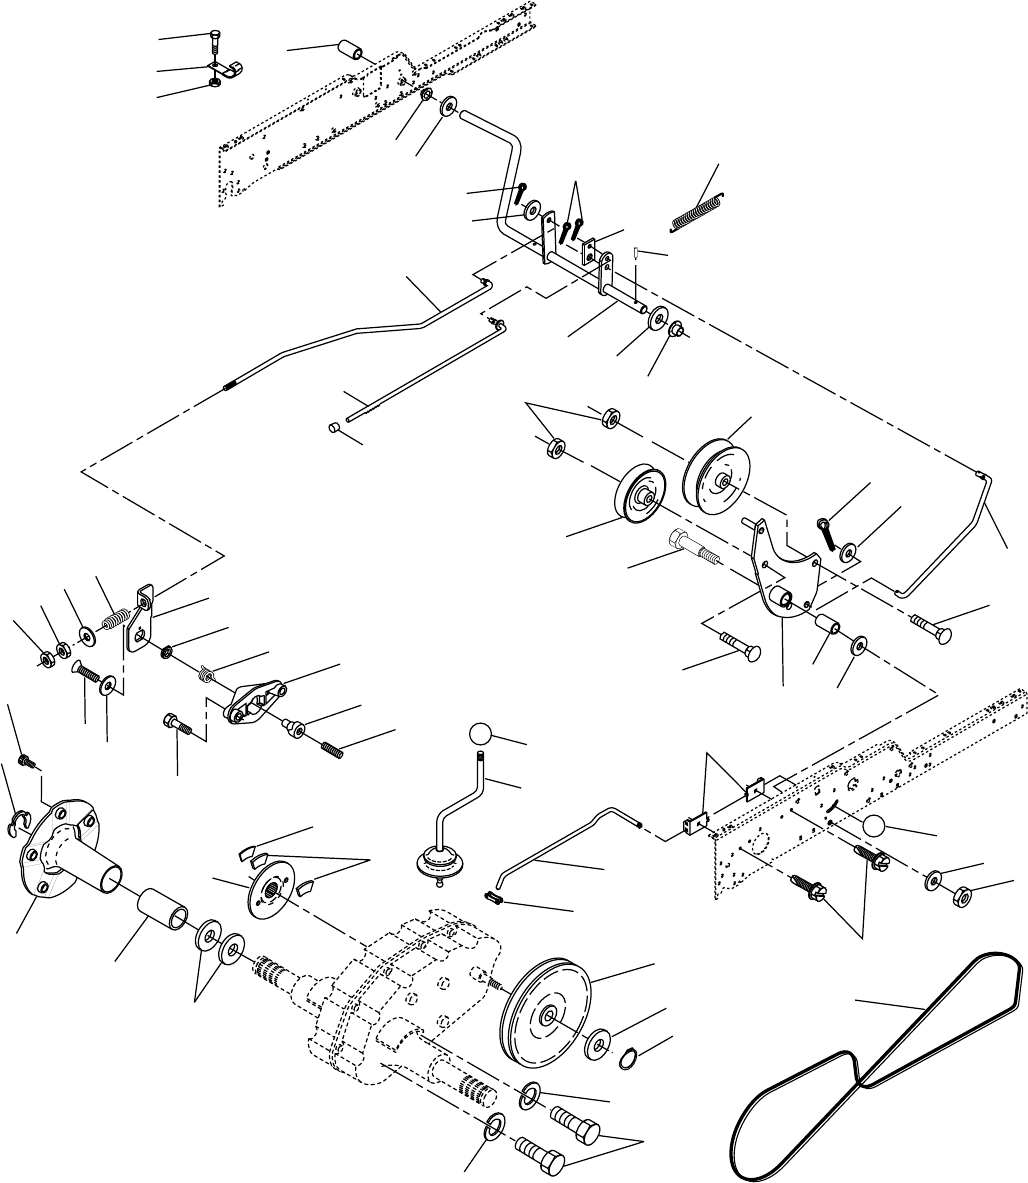 Page 34 of Husqvarna Lawn Mower GT2254 User Guide